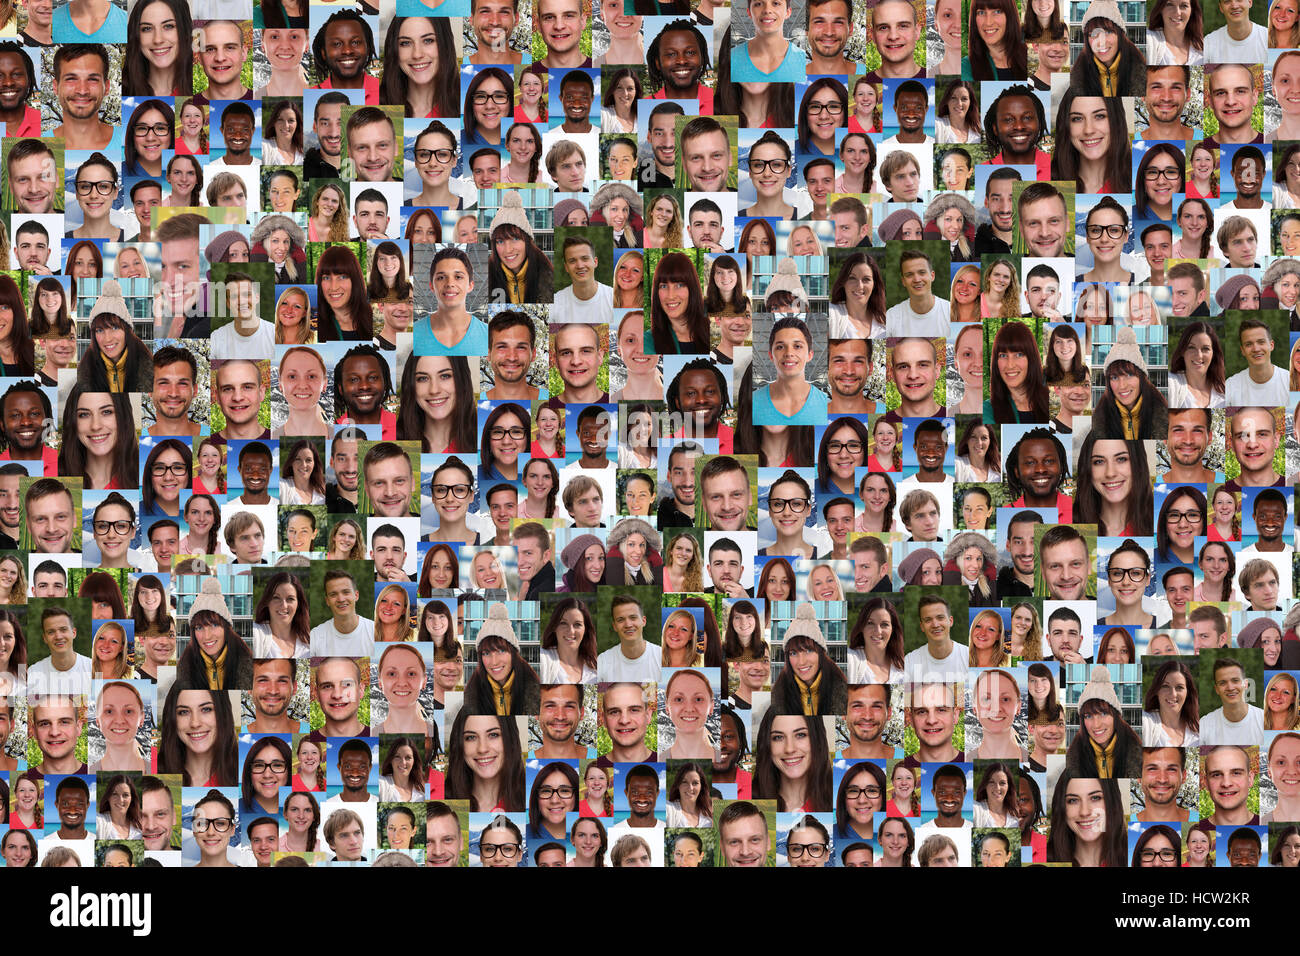 young people background collage large group of smiling faces social